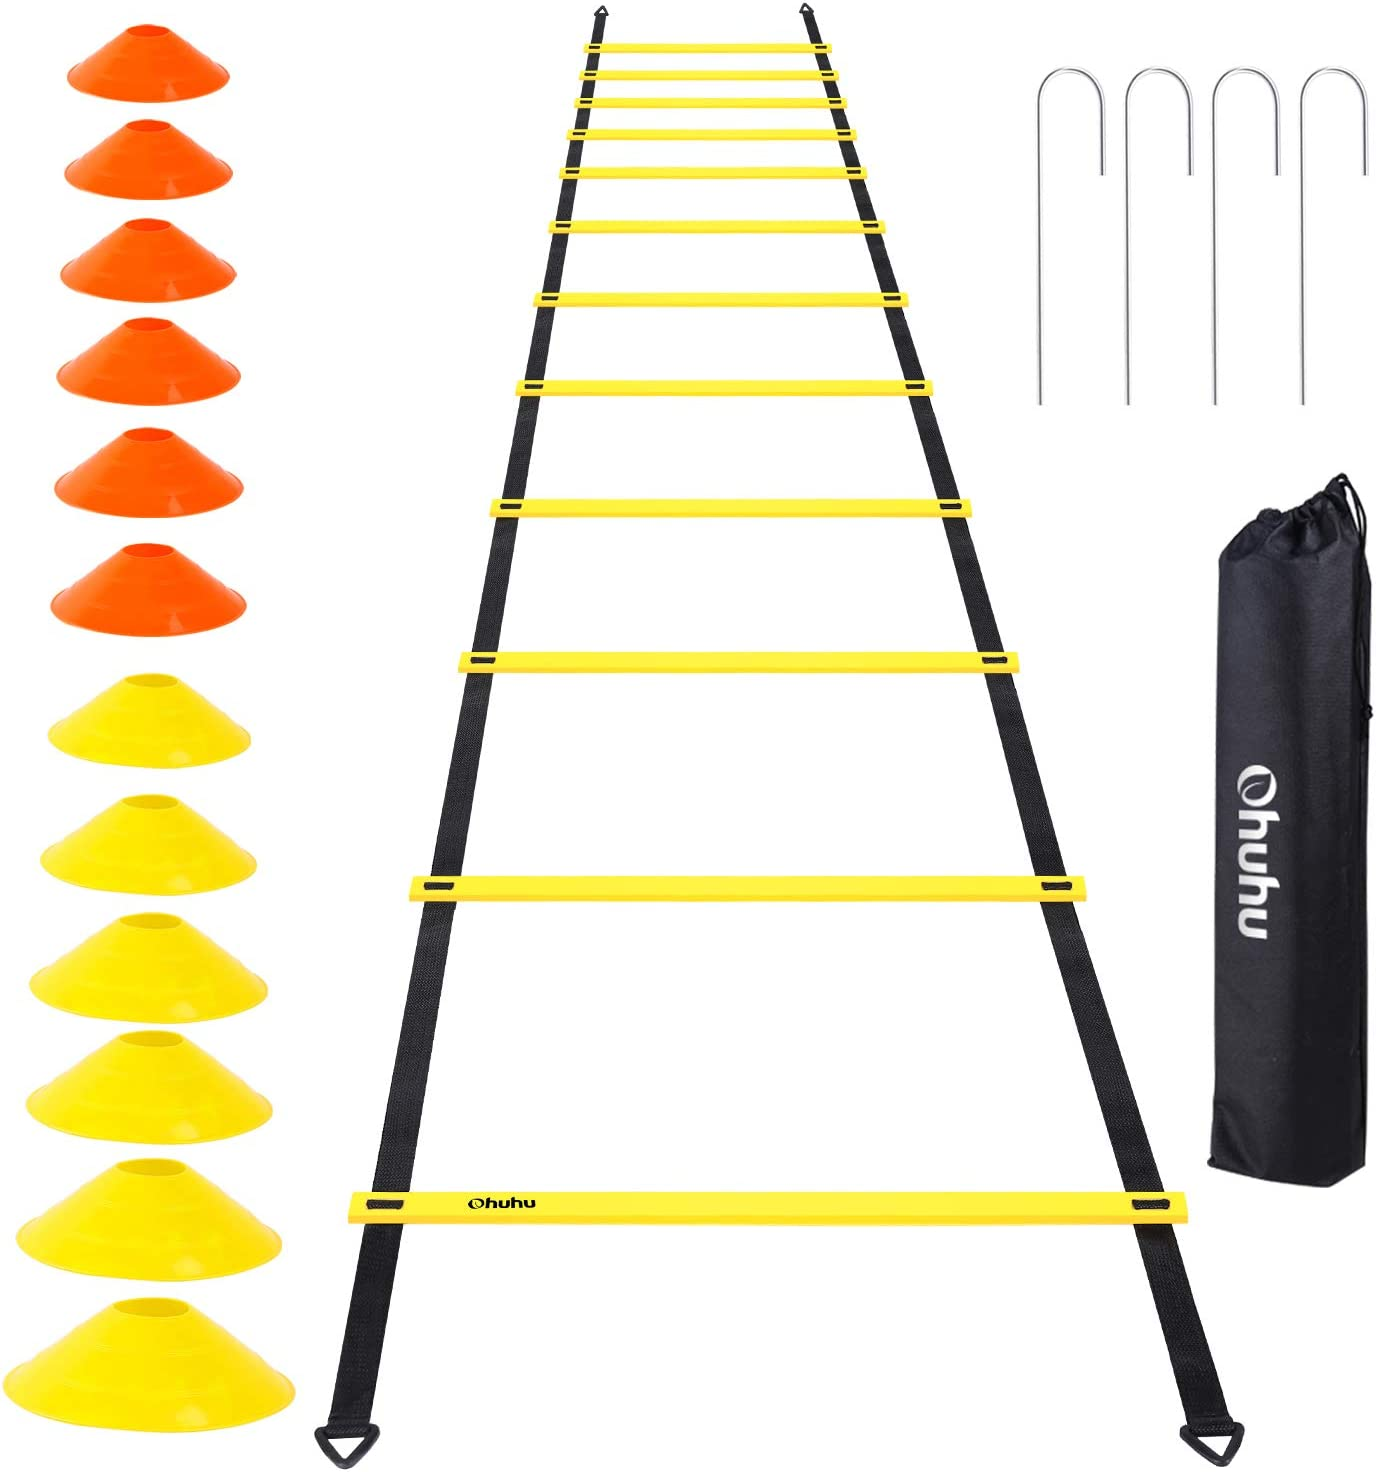 Amazon Com Ohuhu Speed Training Ladder Agility Training Set 12 Rung 20ft Agility Ladder And 12 Field Cones 4 Steel Stakes Carrying Bag Footwork Equipment For Soccer Football Boxing Drills Sports Outdoors